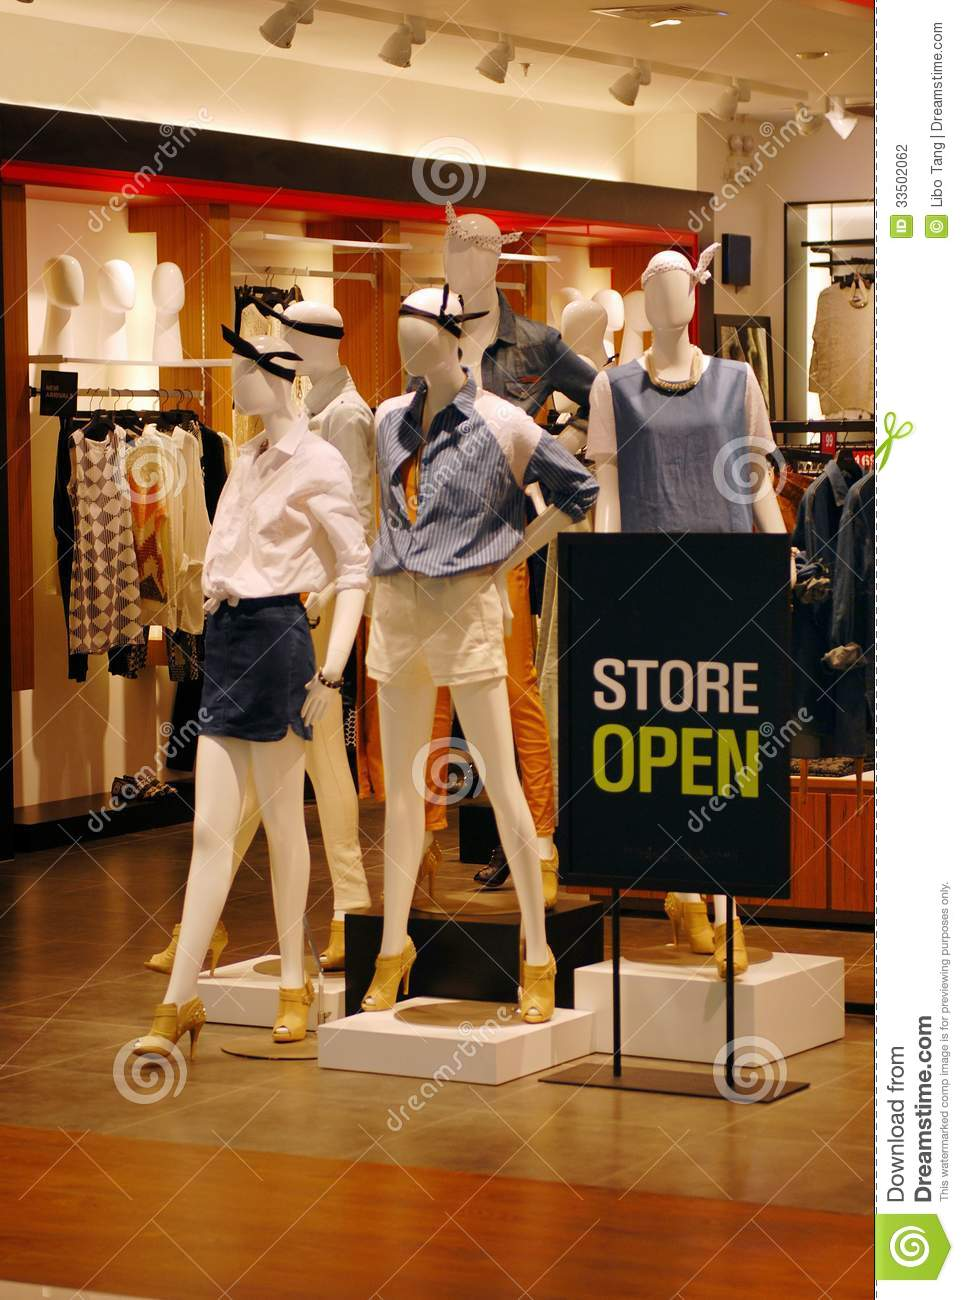 What clothing stores are open